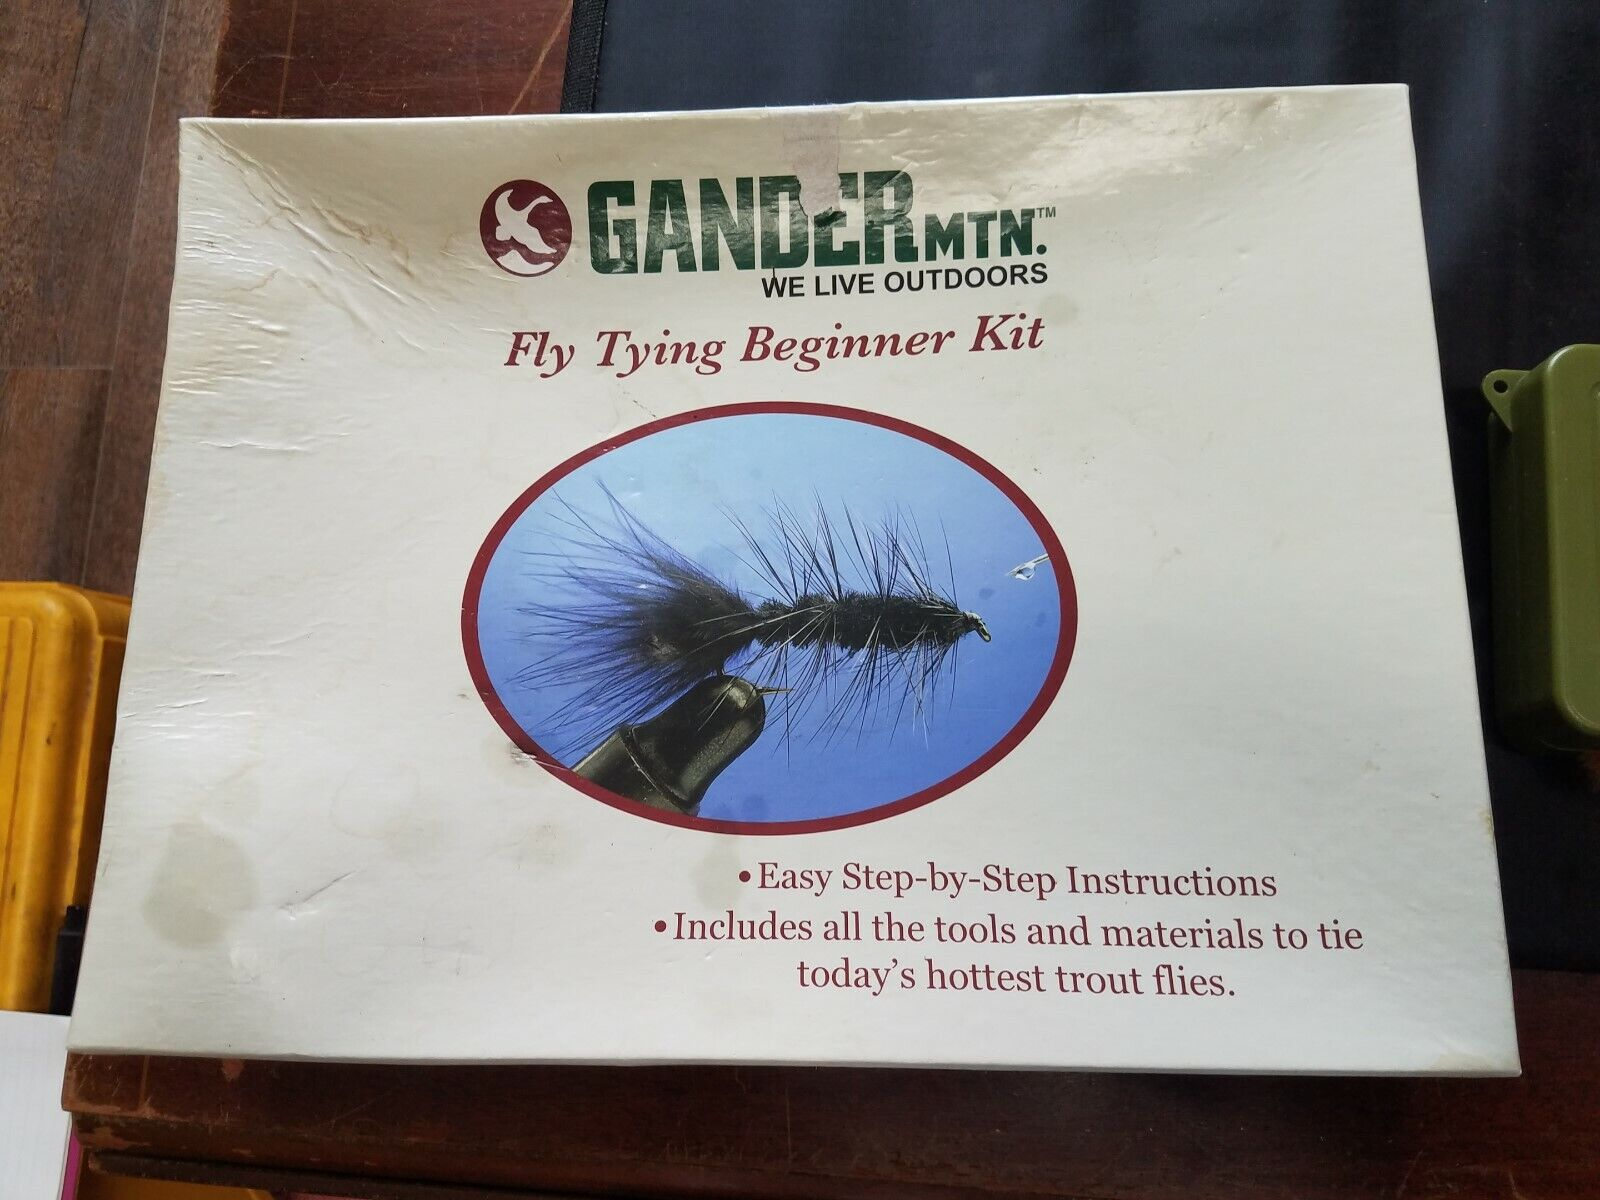 Gander Mountain Fly Kit Beginner Kit met Eay Instruction Extra Accessorie